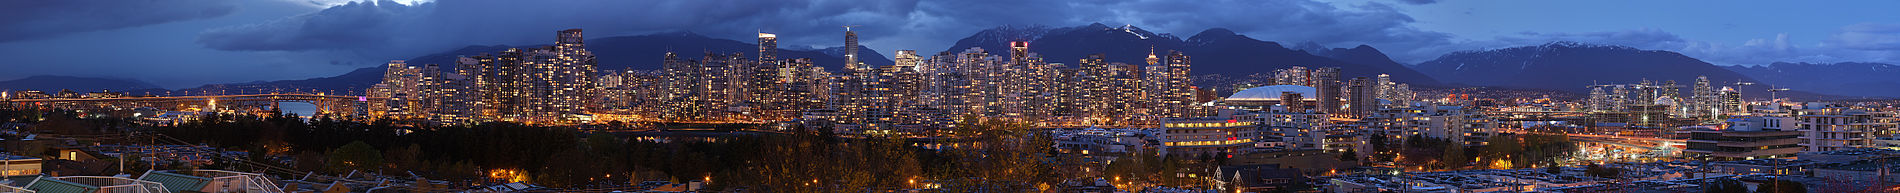 Vancouver dusk pano.jpg